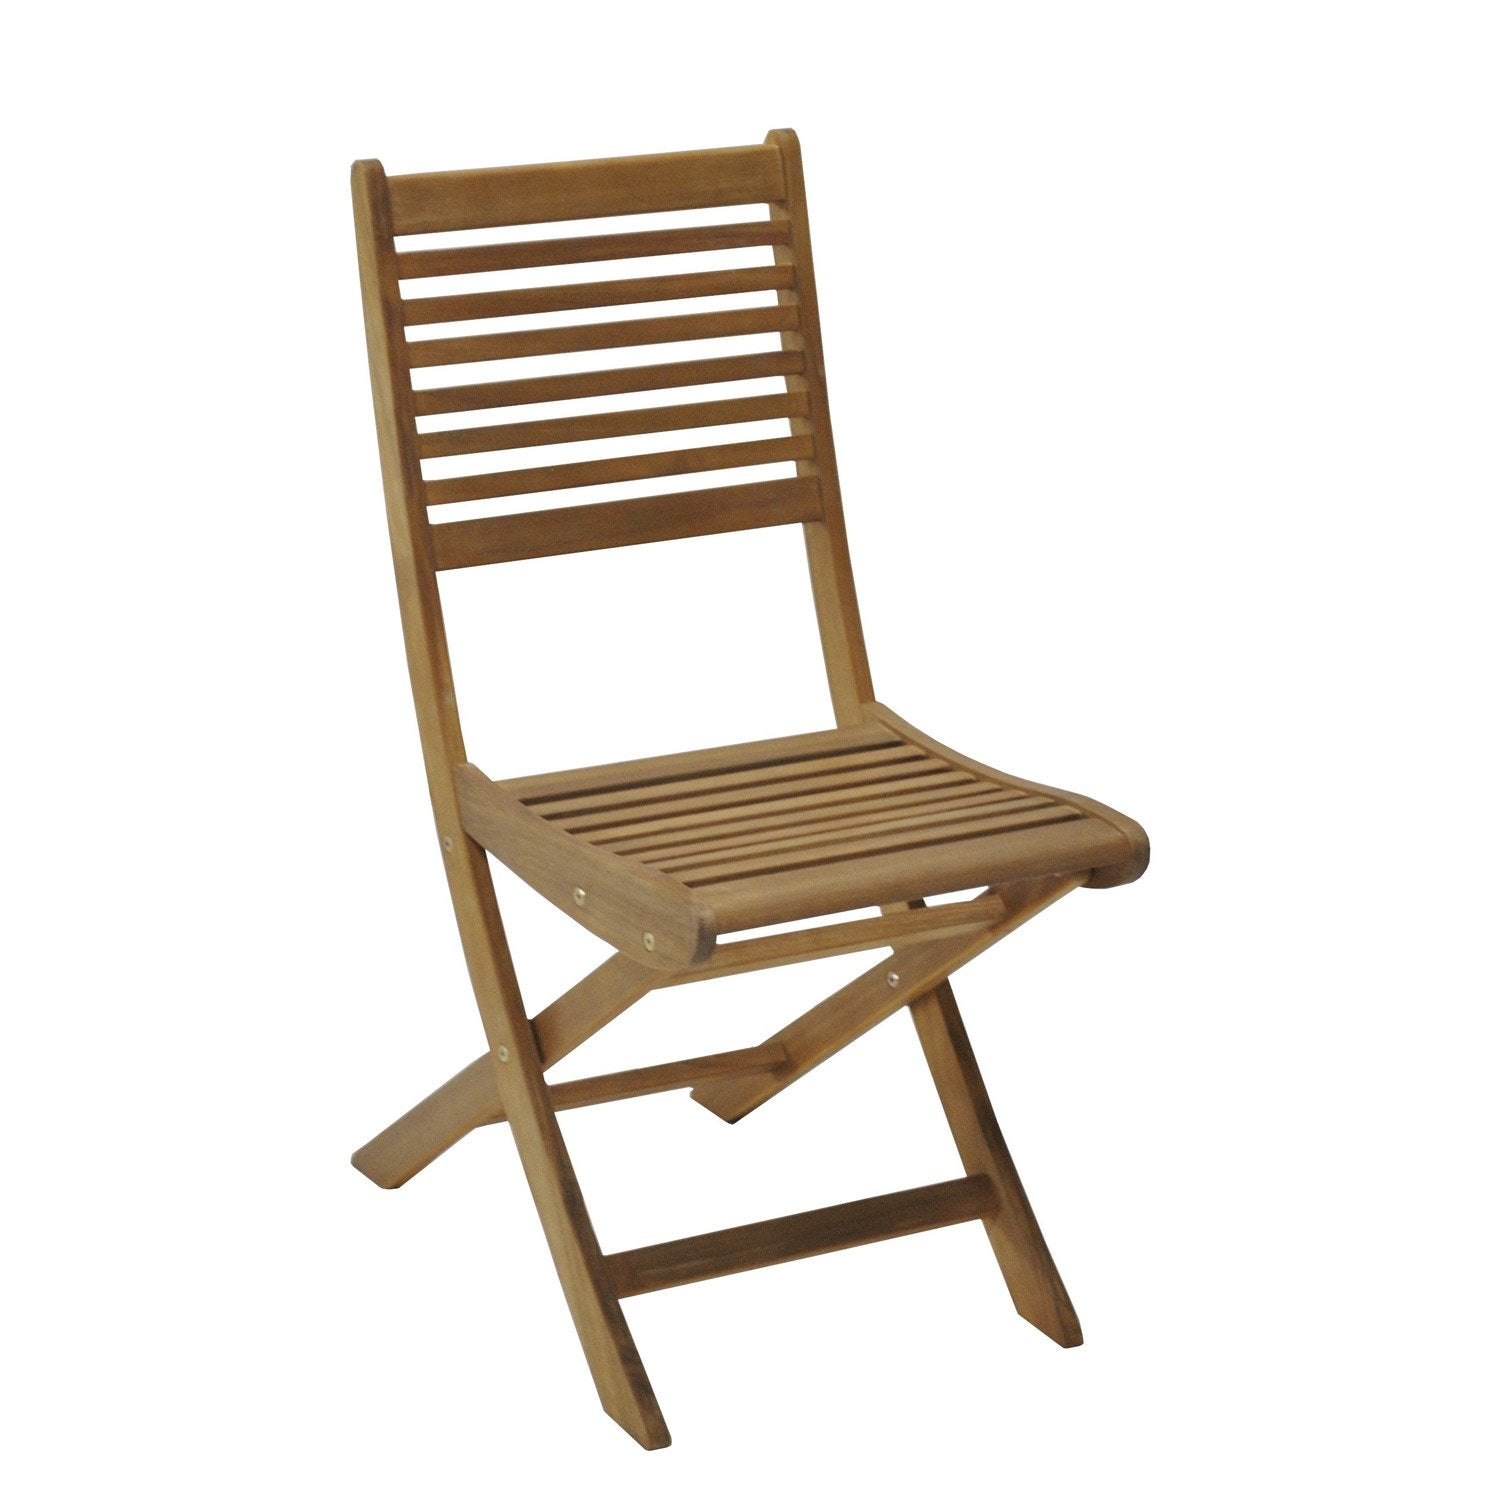 Chaise pliante leroy merlin 28 images chaise pliante for Chaise longue en bois de jardin